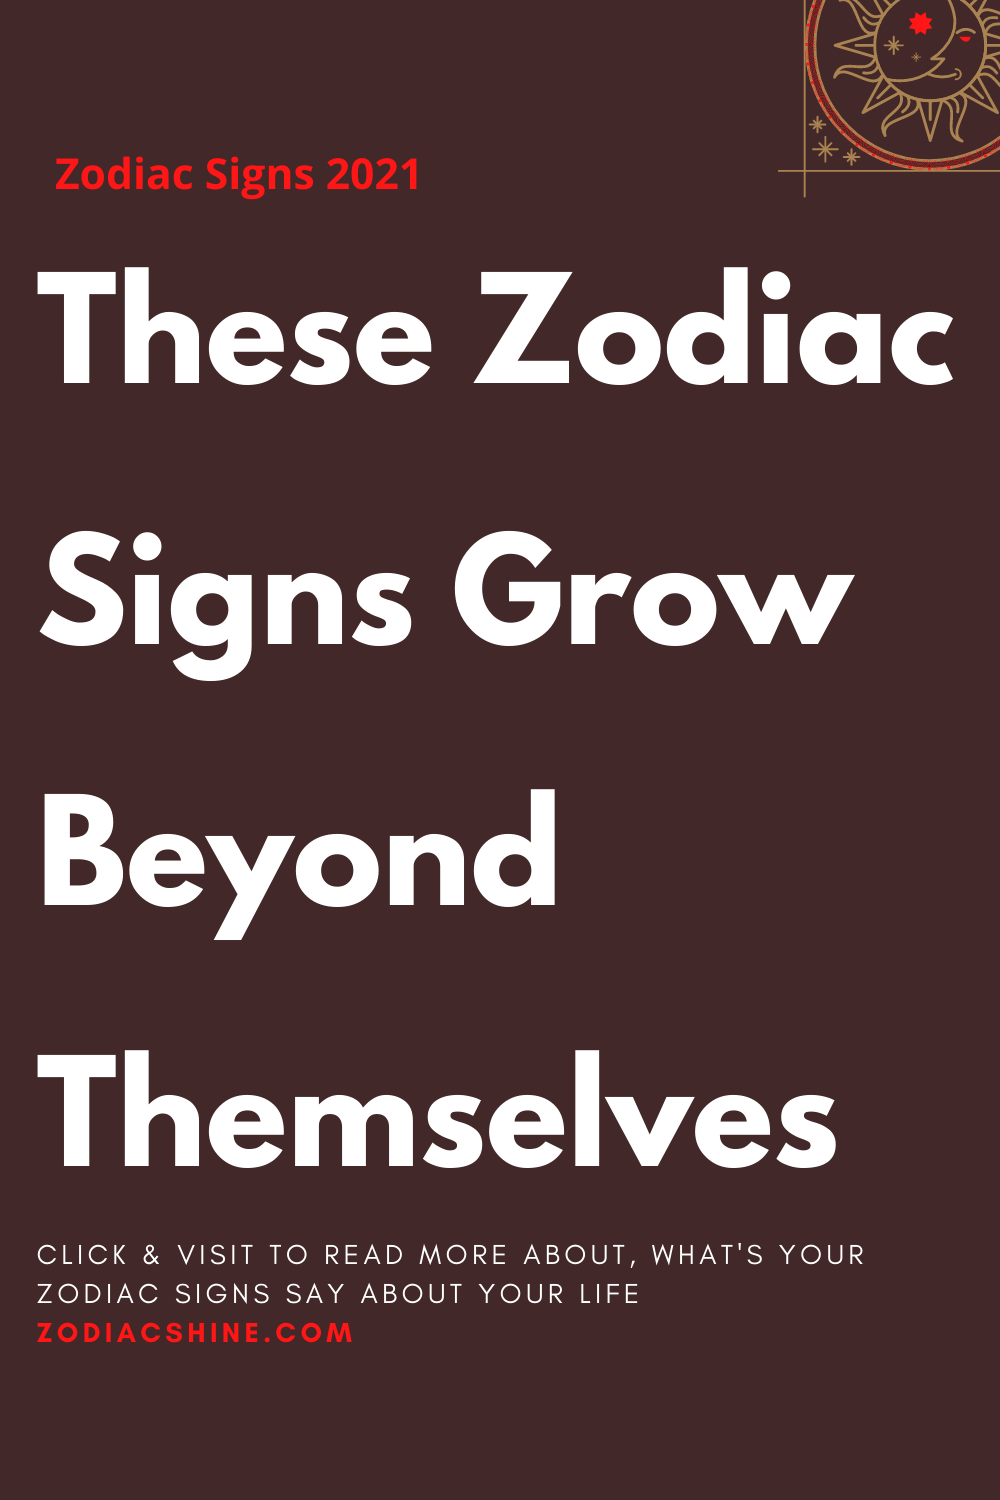 These Zodiac Signs Grow Beyond Themselves